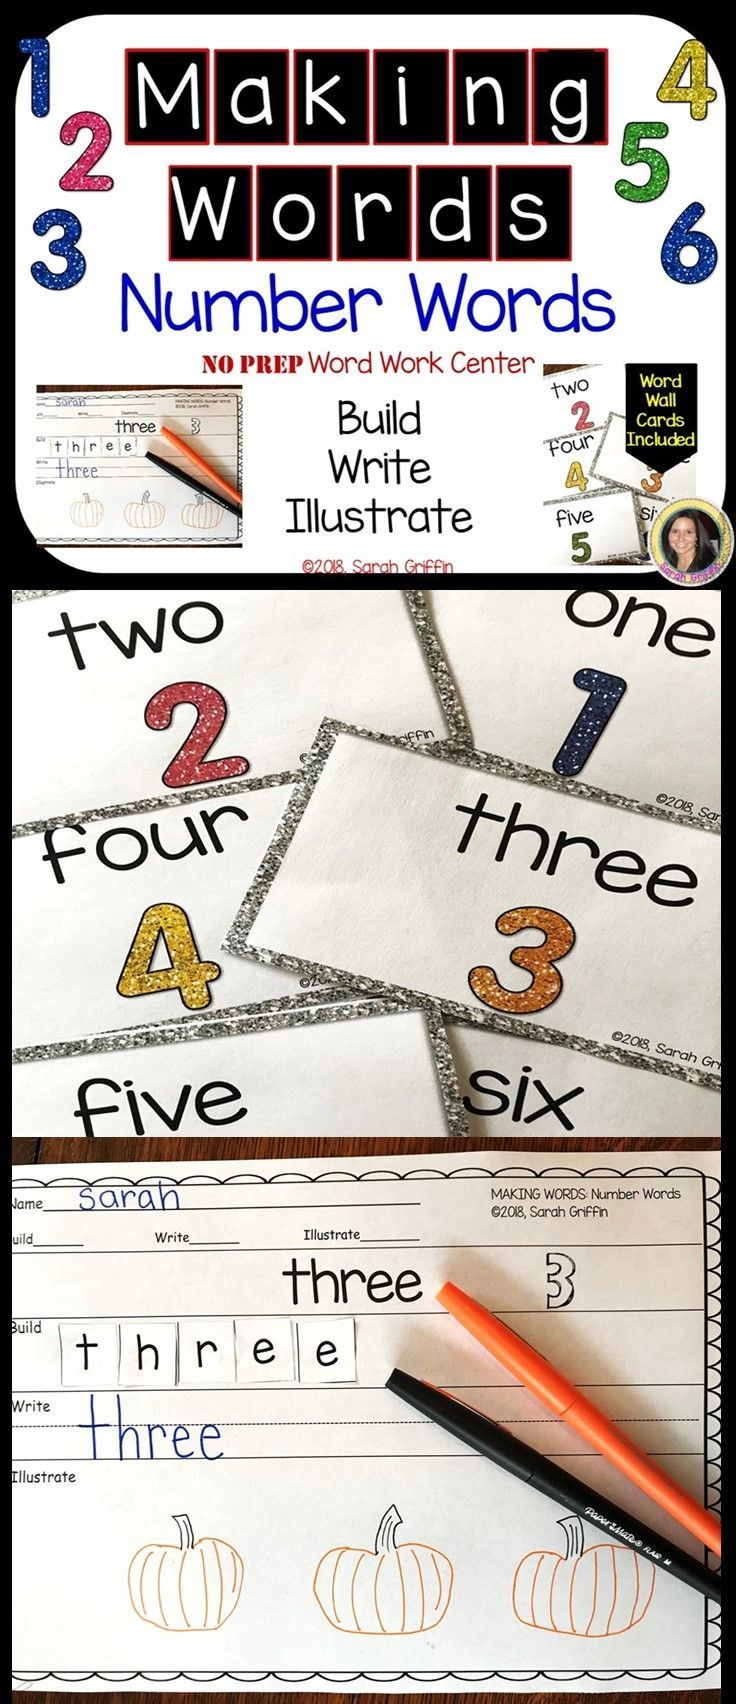 Making Words - Number Words - Writing and Math Center | All Things ...